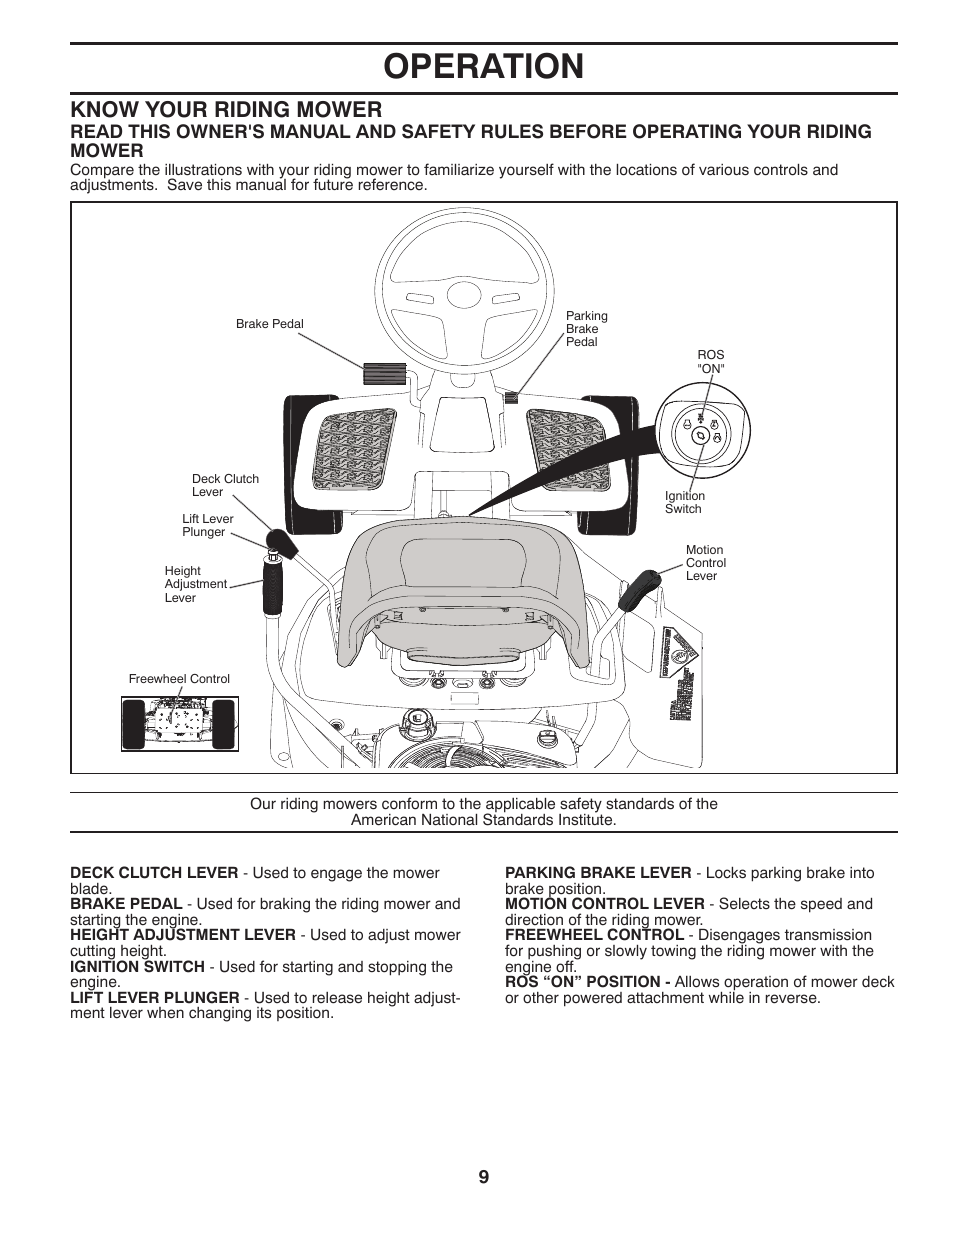 How To Adjust A Clutch On A Riding Lawn Mower